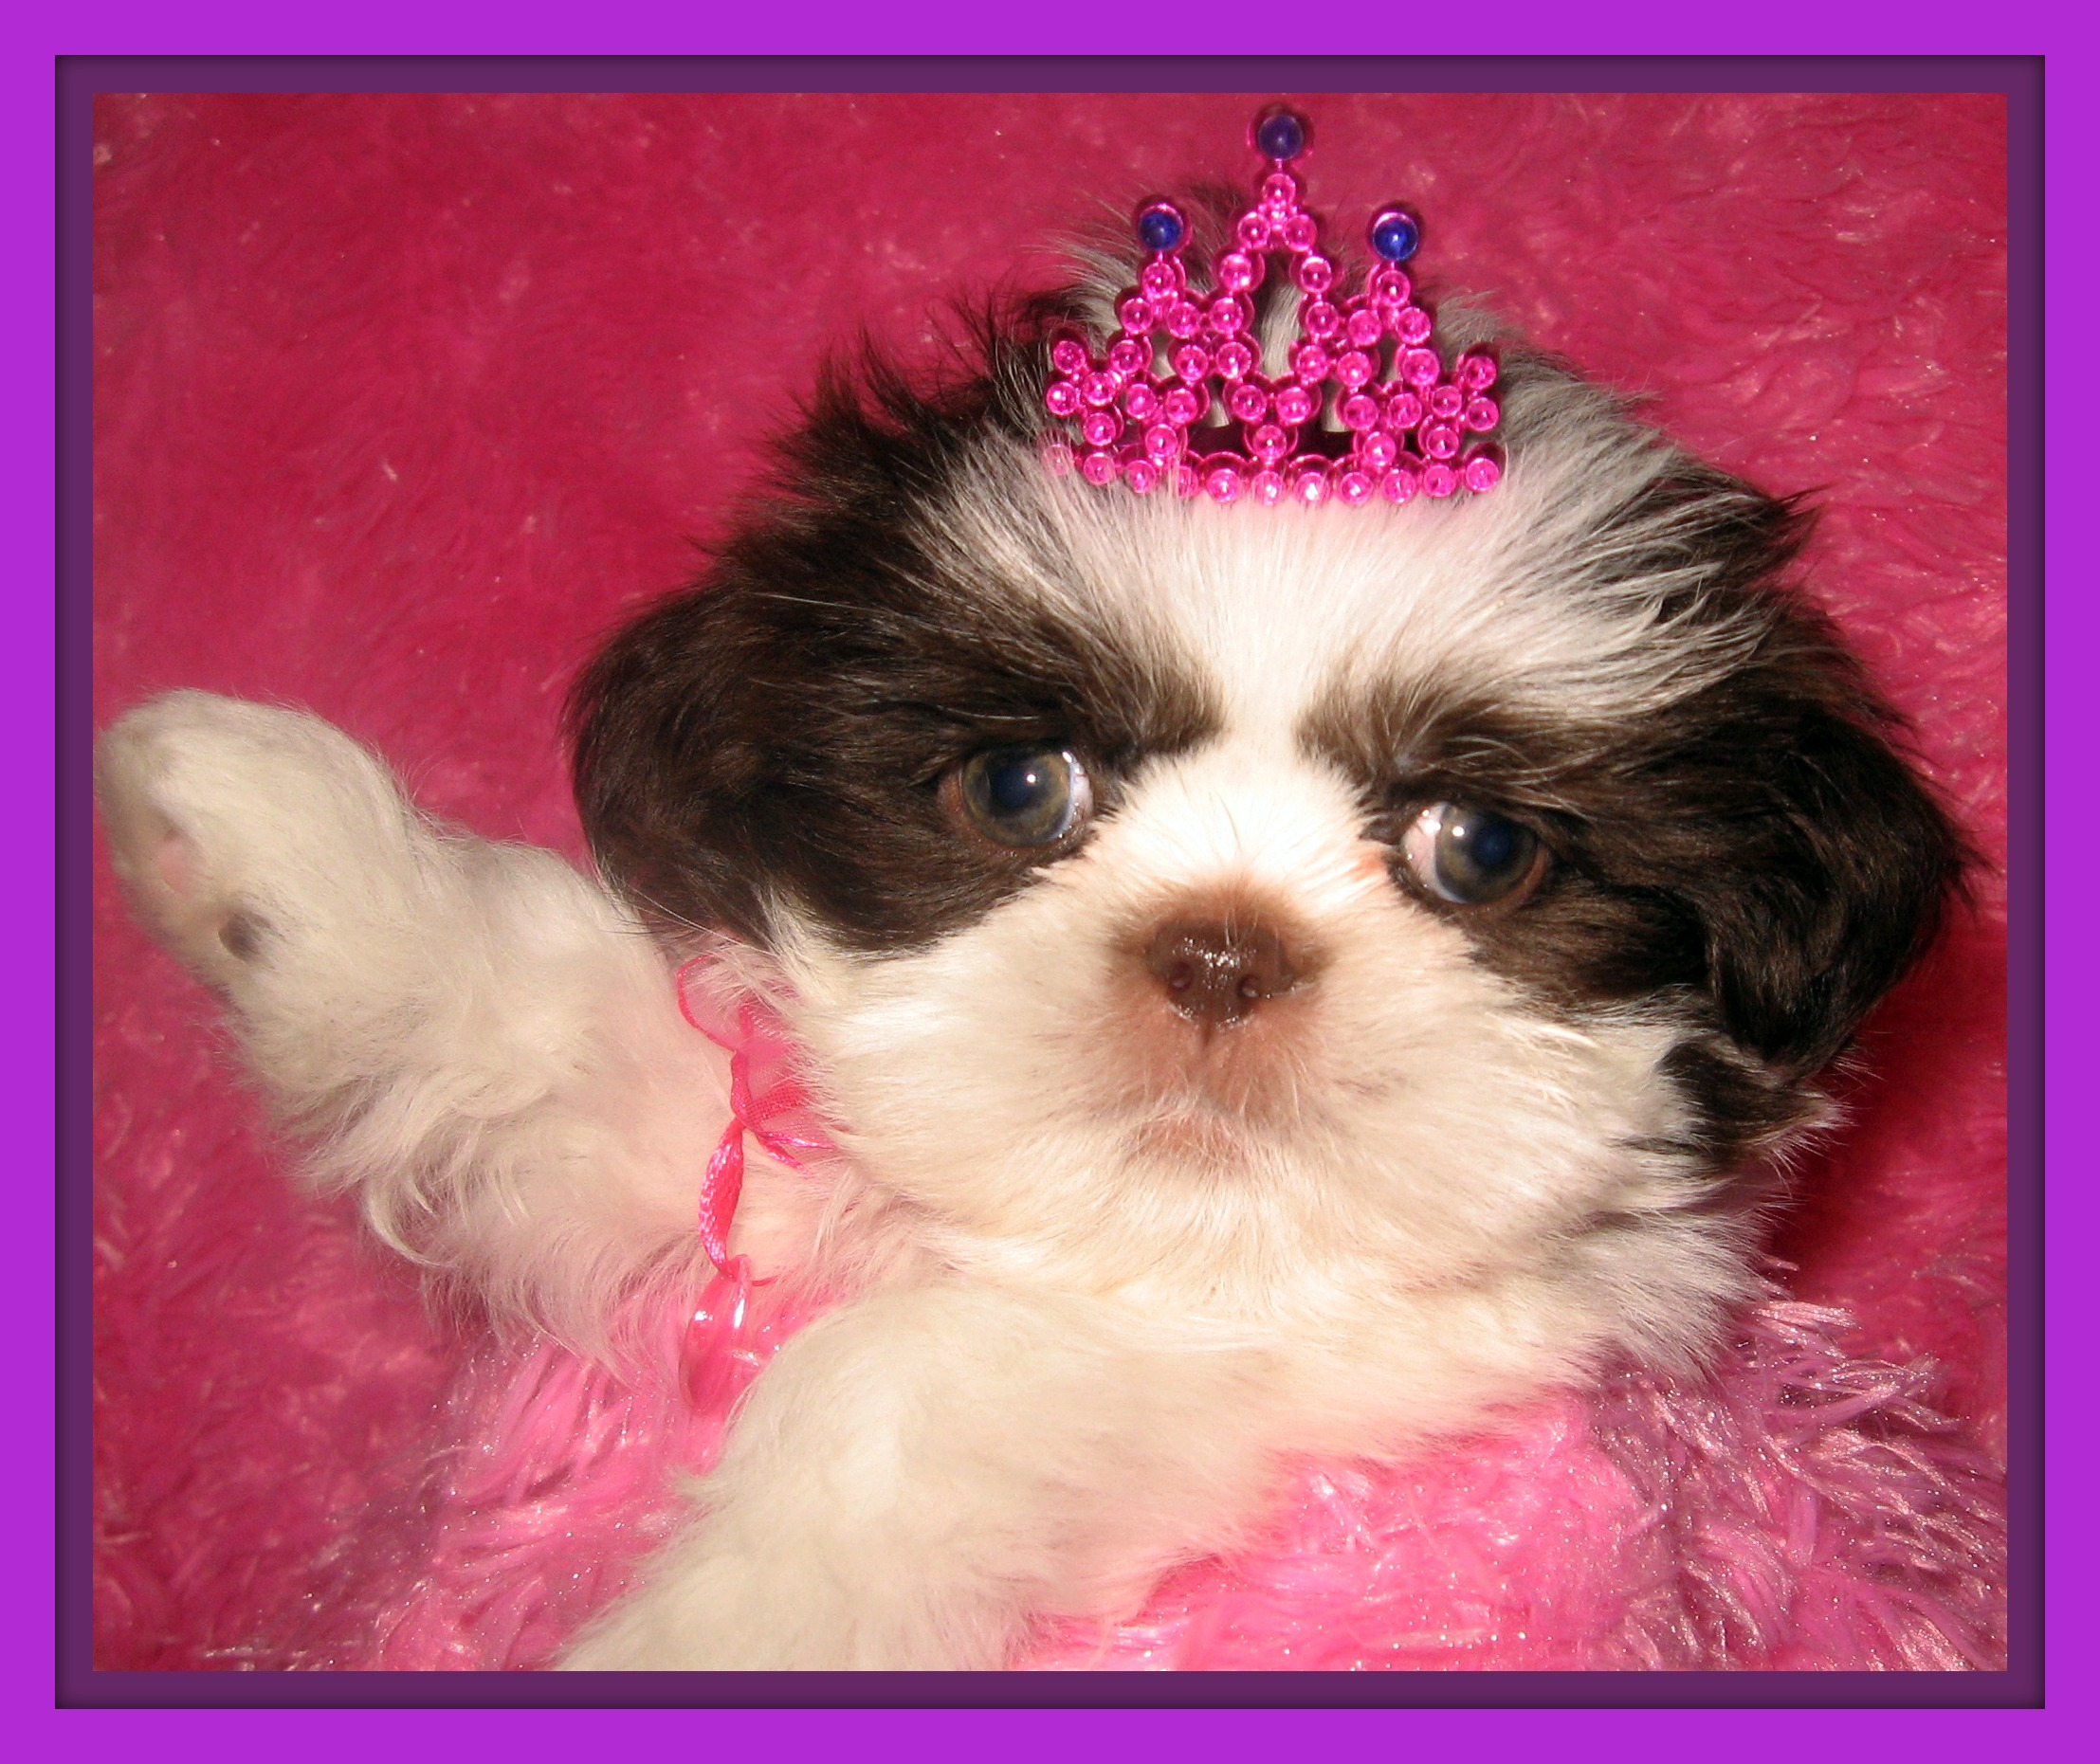 Shih Tzu Puppies  Cleveland Ohio Puppies For Sale  View Original